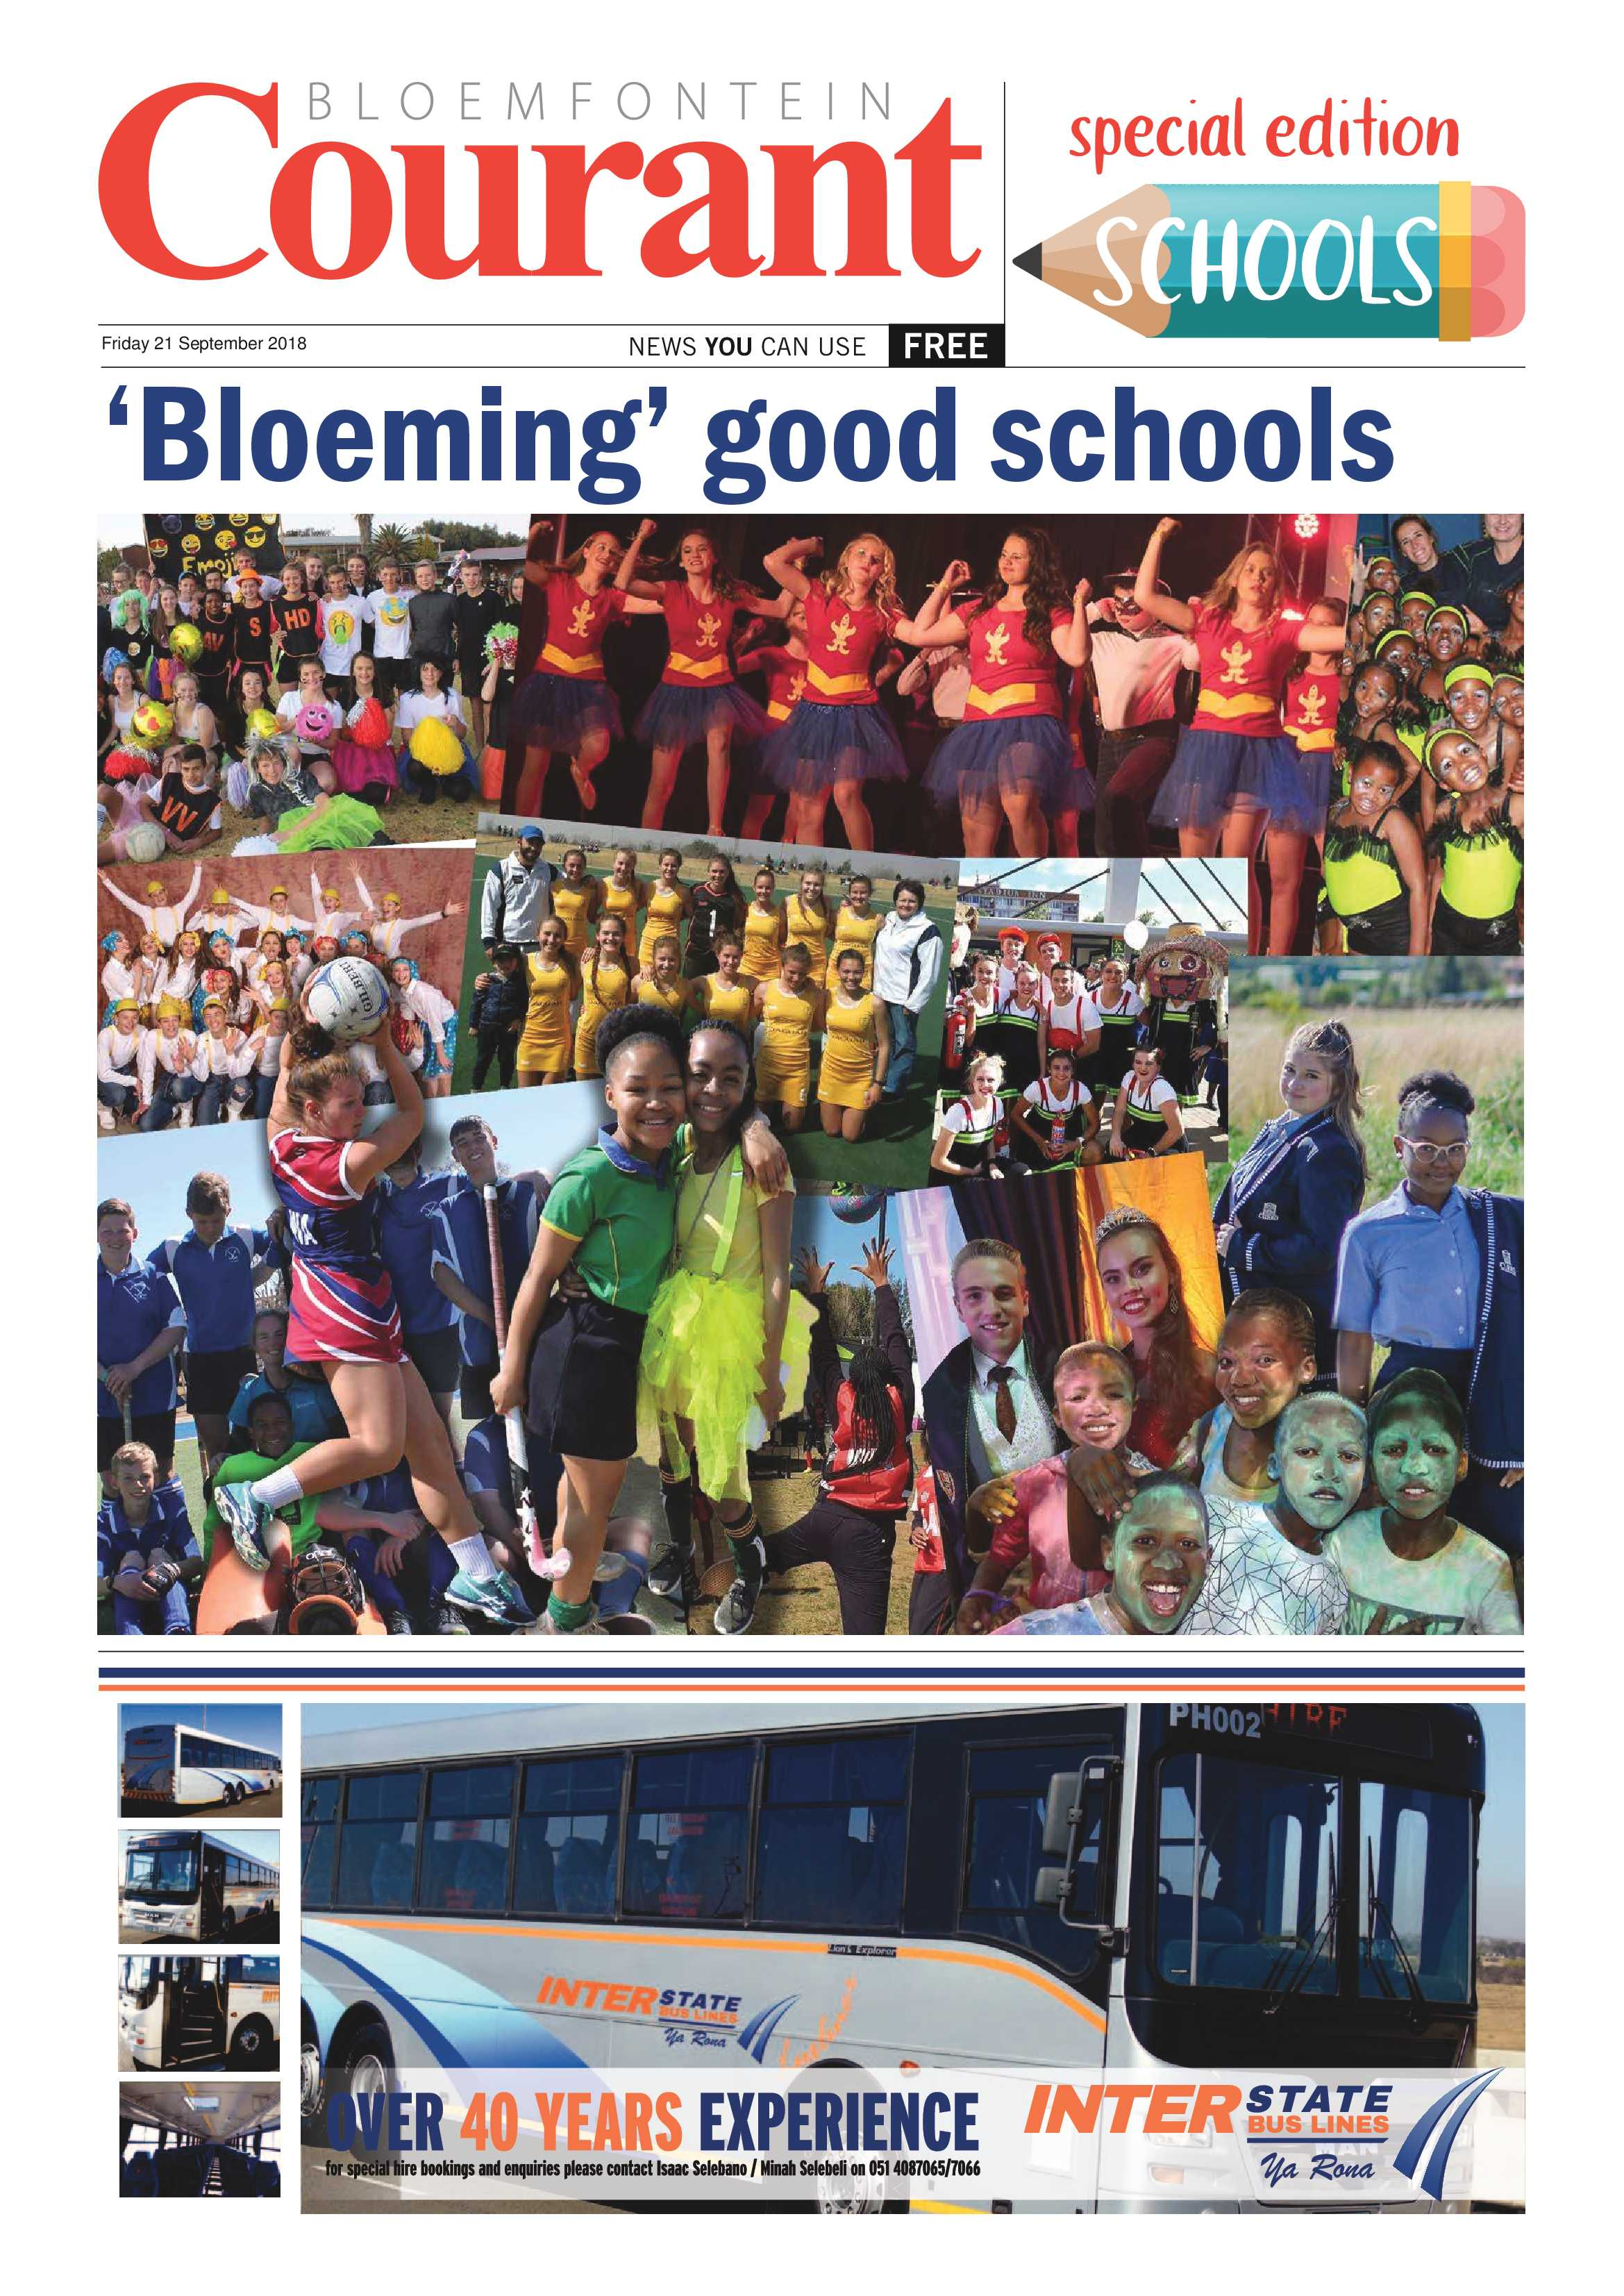 courant-schools-edition-20-september-2018-epapers-page-1